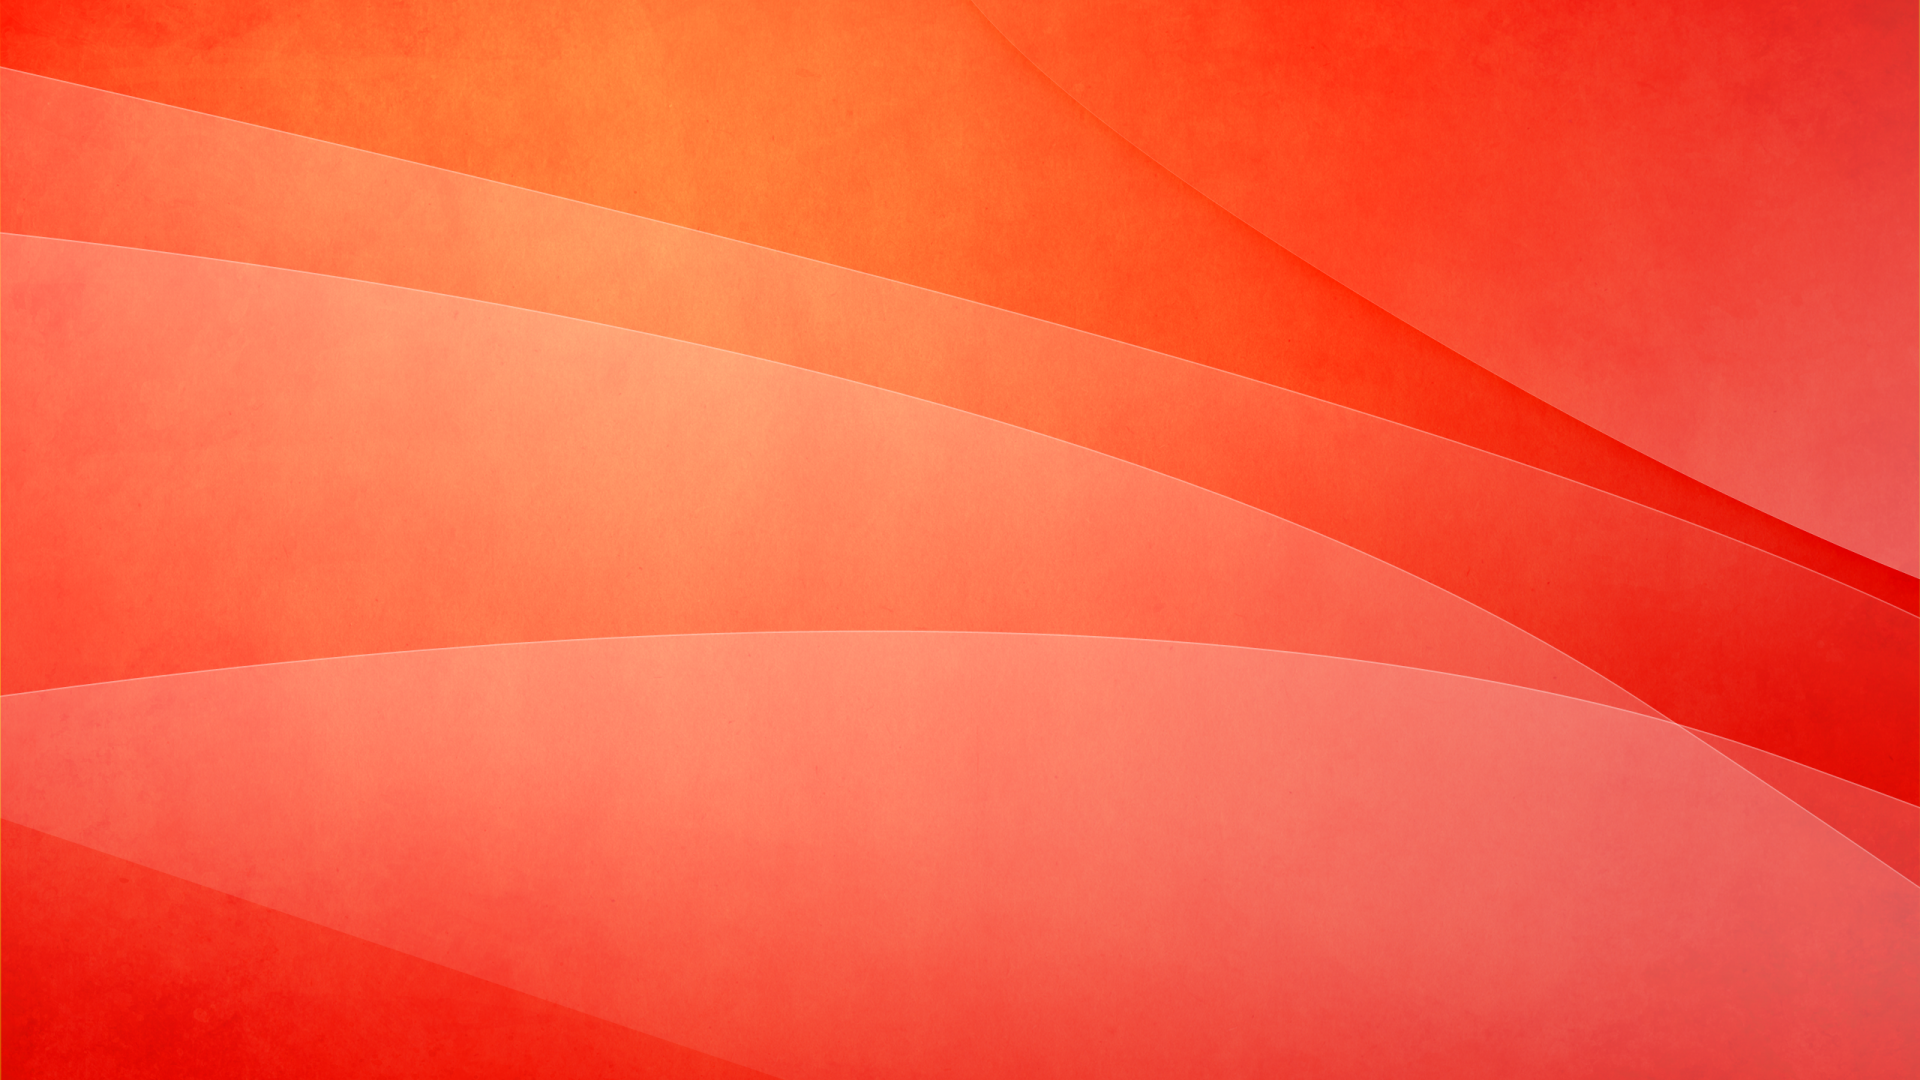 50 Ipad Air Wallpapers In High Definition For Free Download: Sunburst Bright